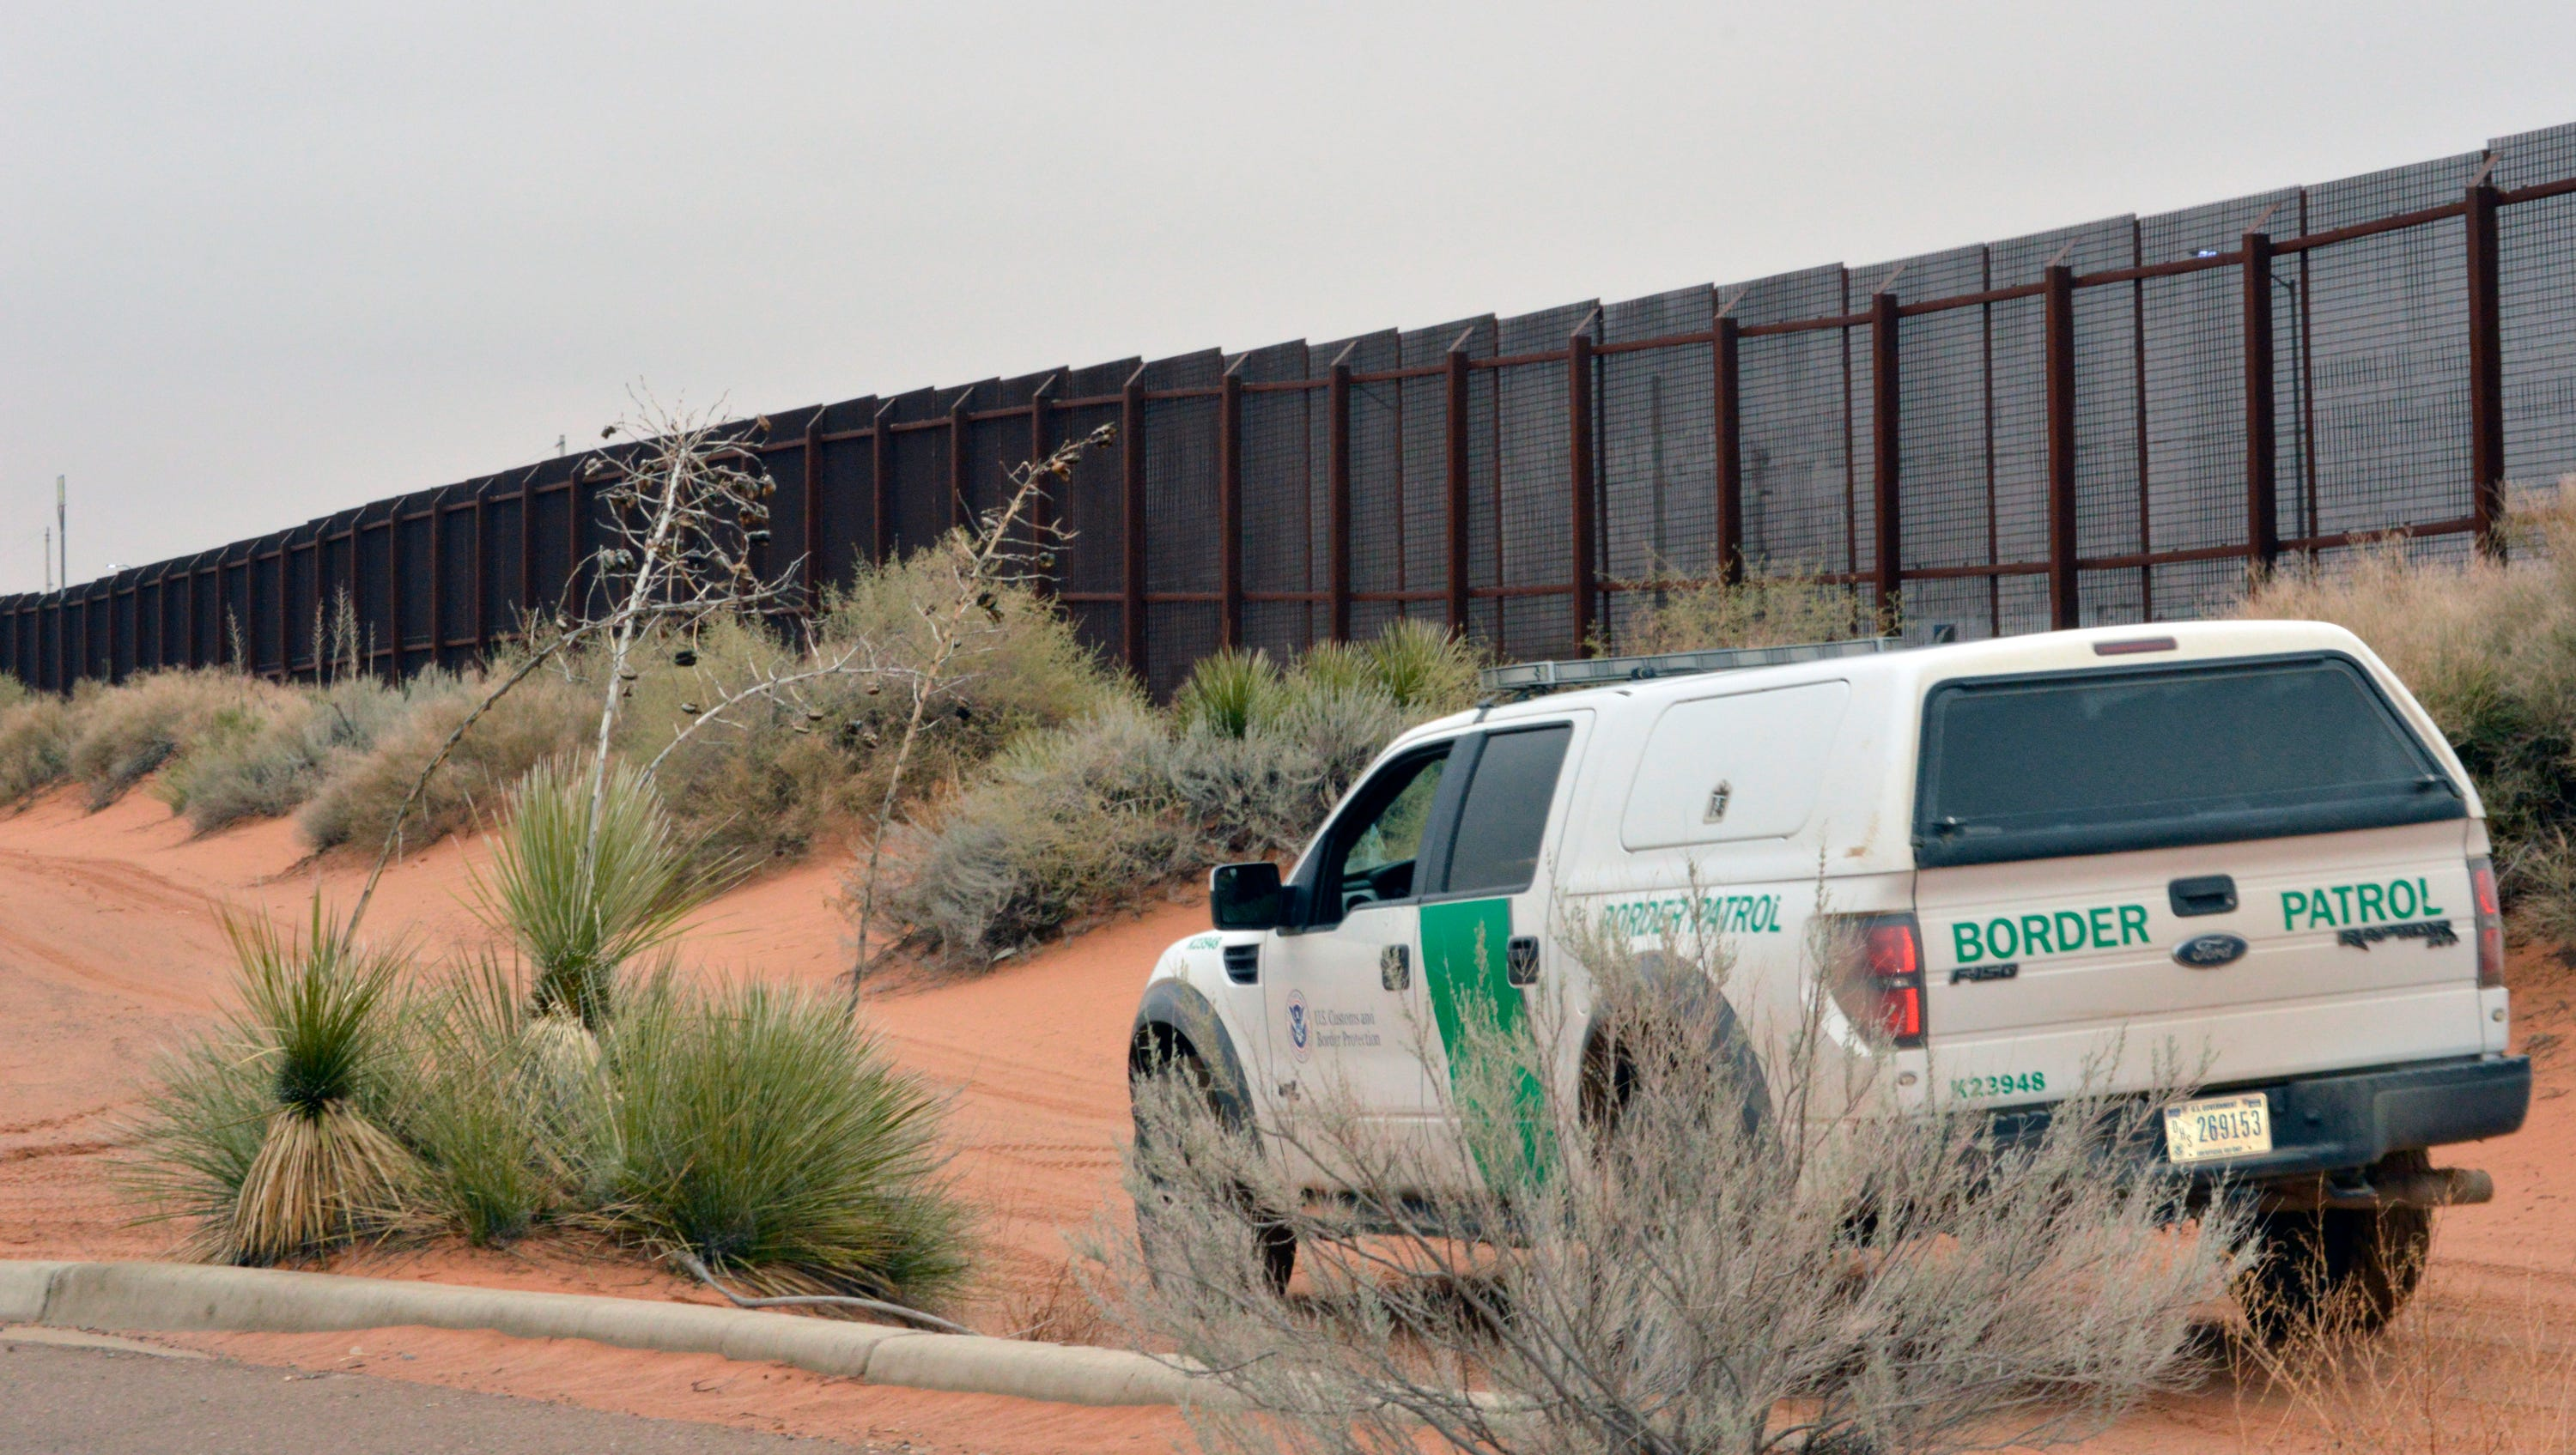 Ecuadorian migrant dies after being found by Border Patrol in Southern New Mexico desert